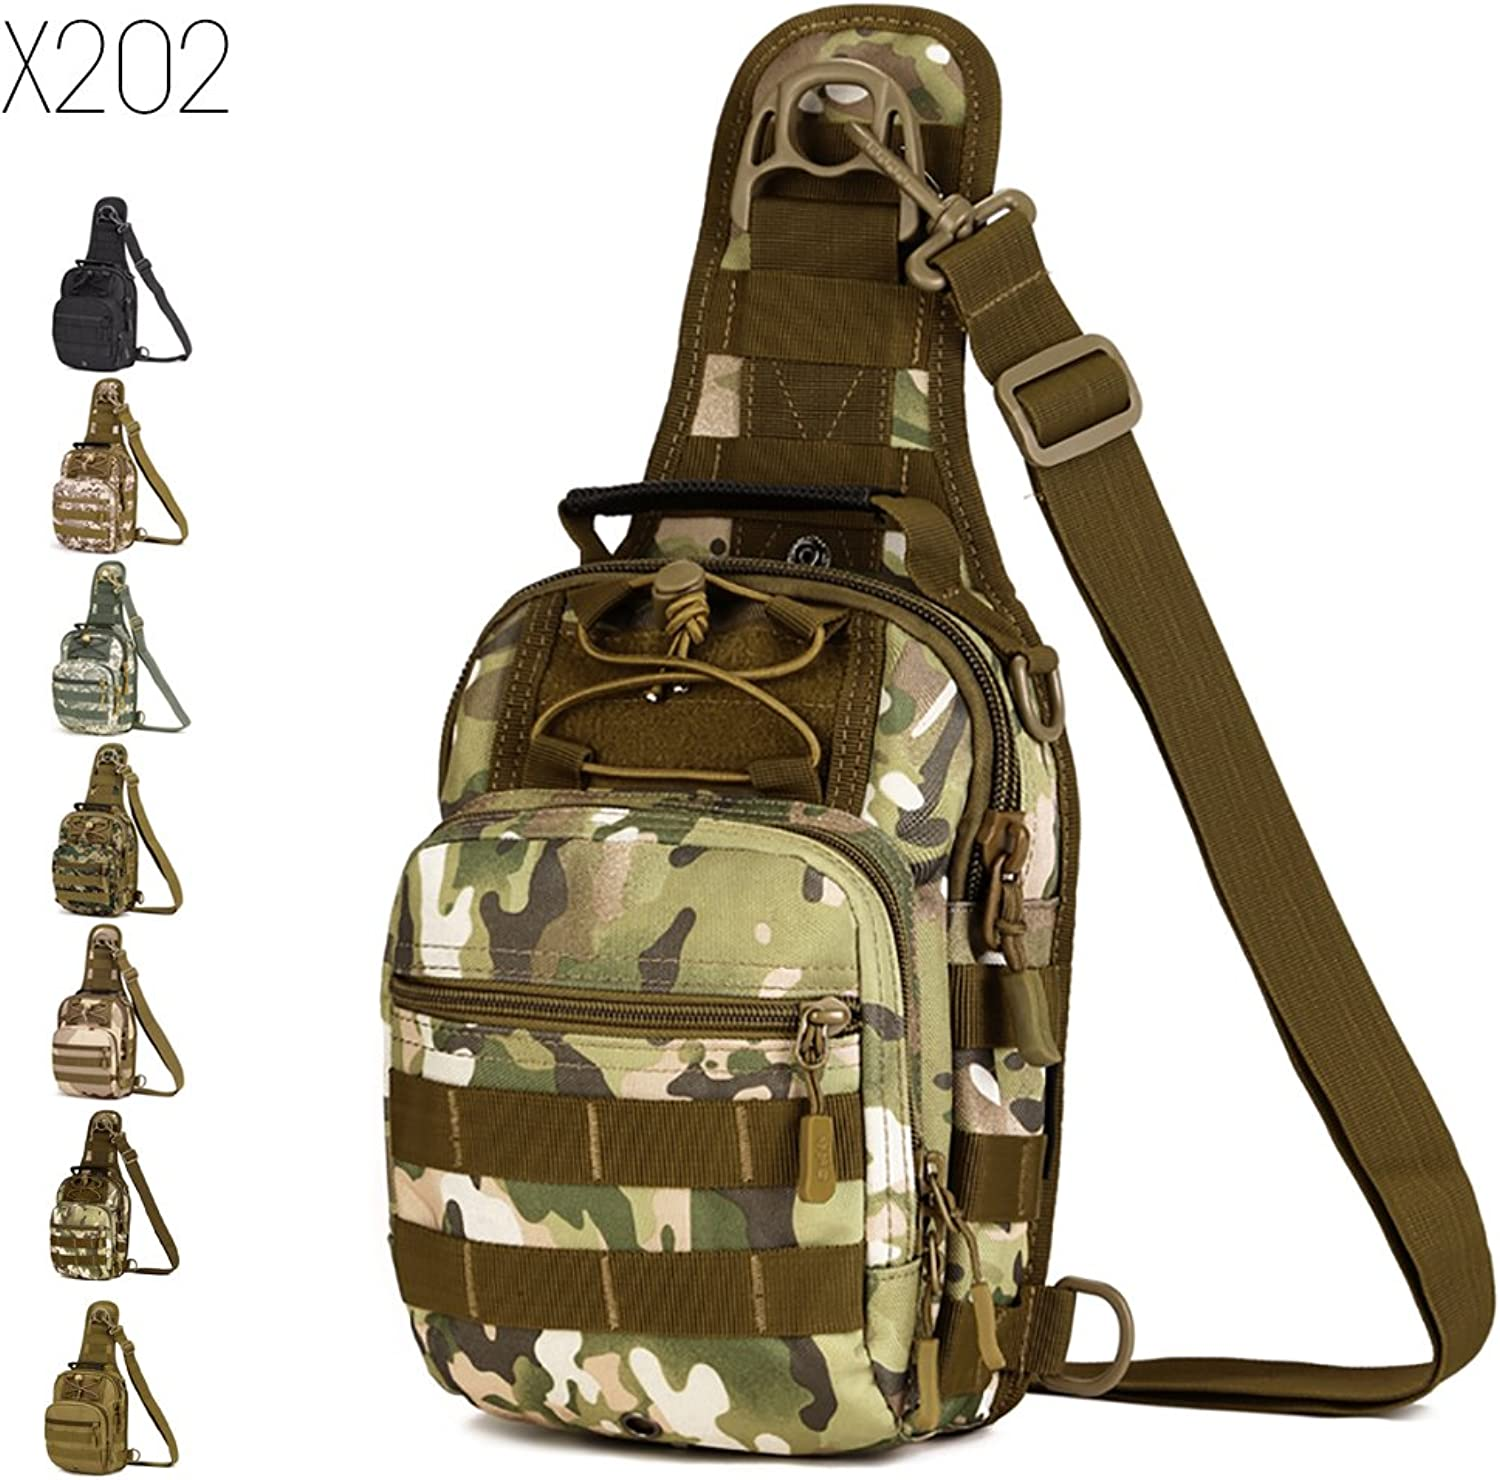 FlyHawk Tactical Rover Sling Pack Military Sport Backpack Shoulder Chest Bag for Hiking, Biking, Running, Trekking and Climbing